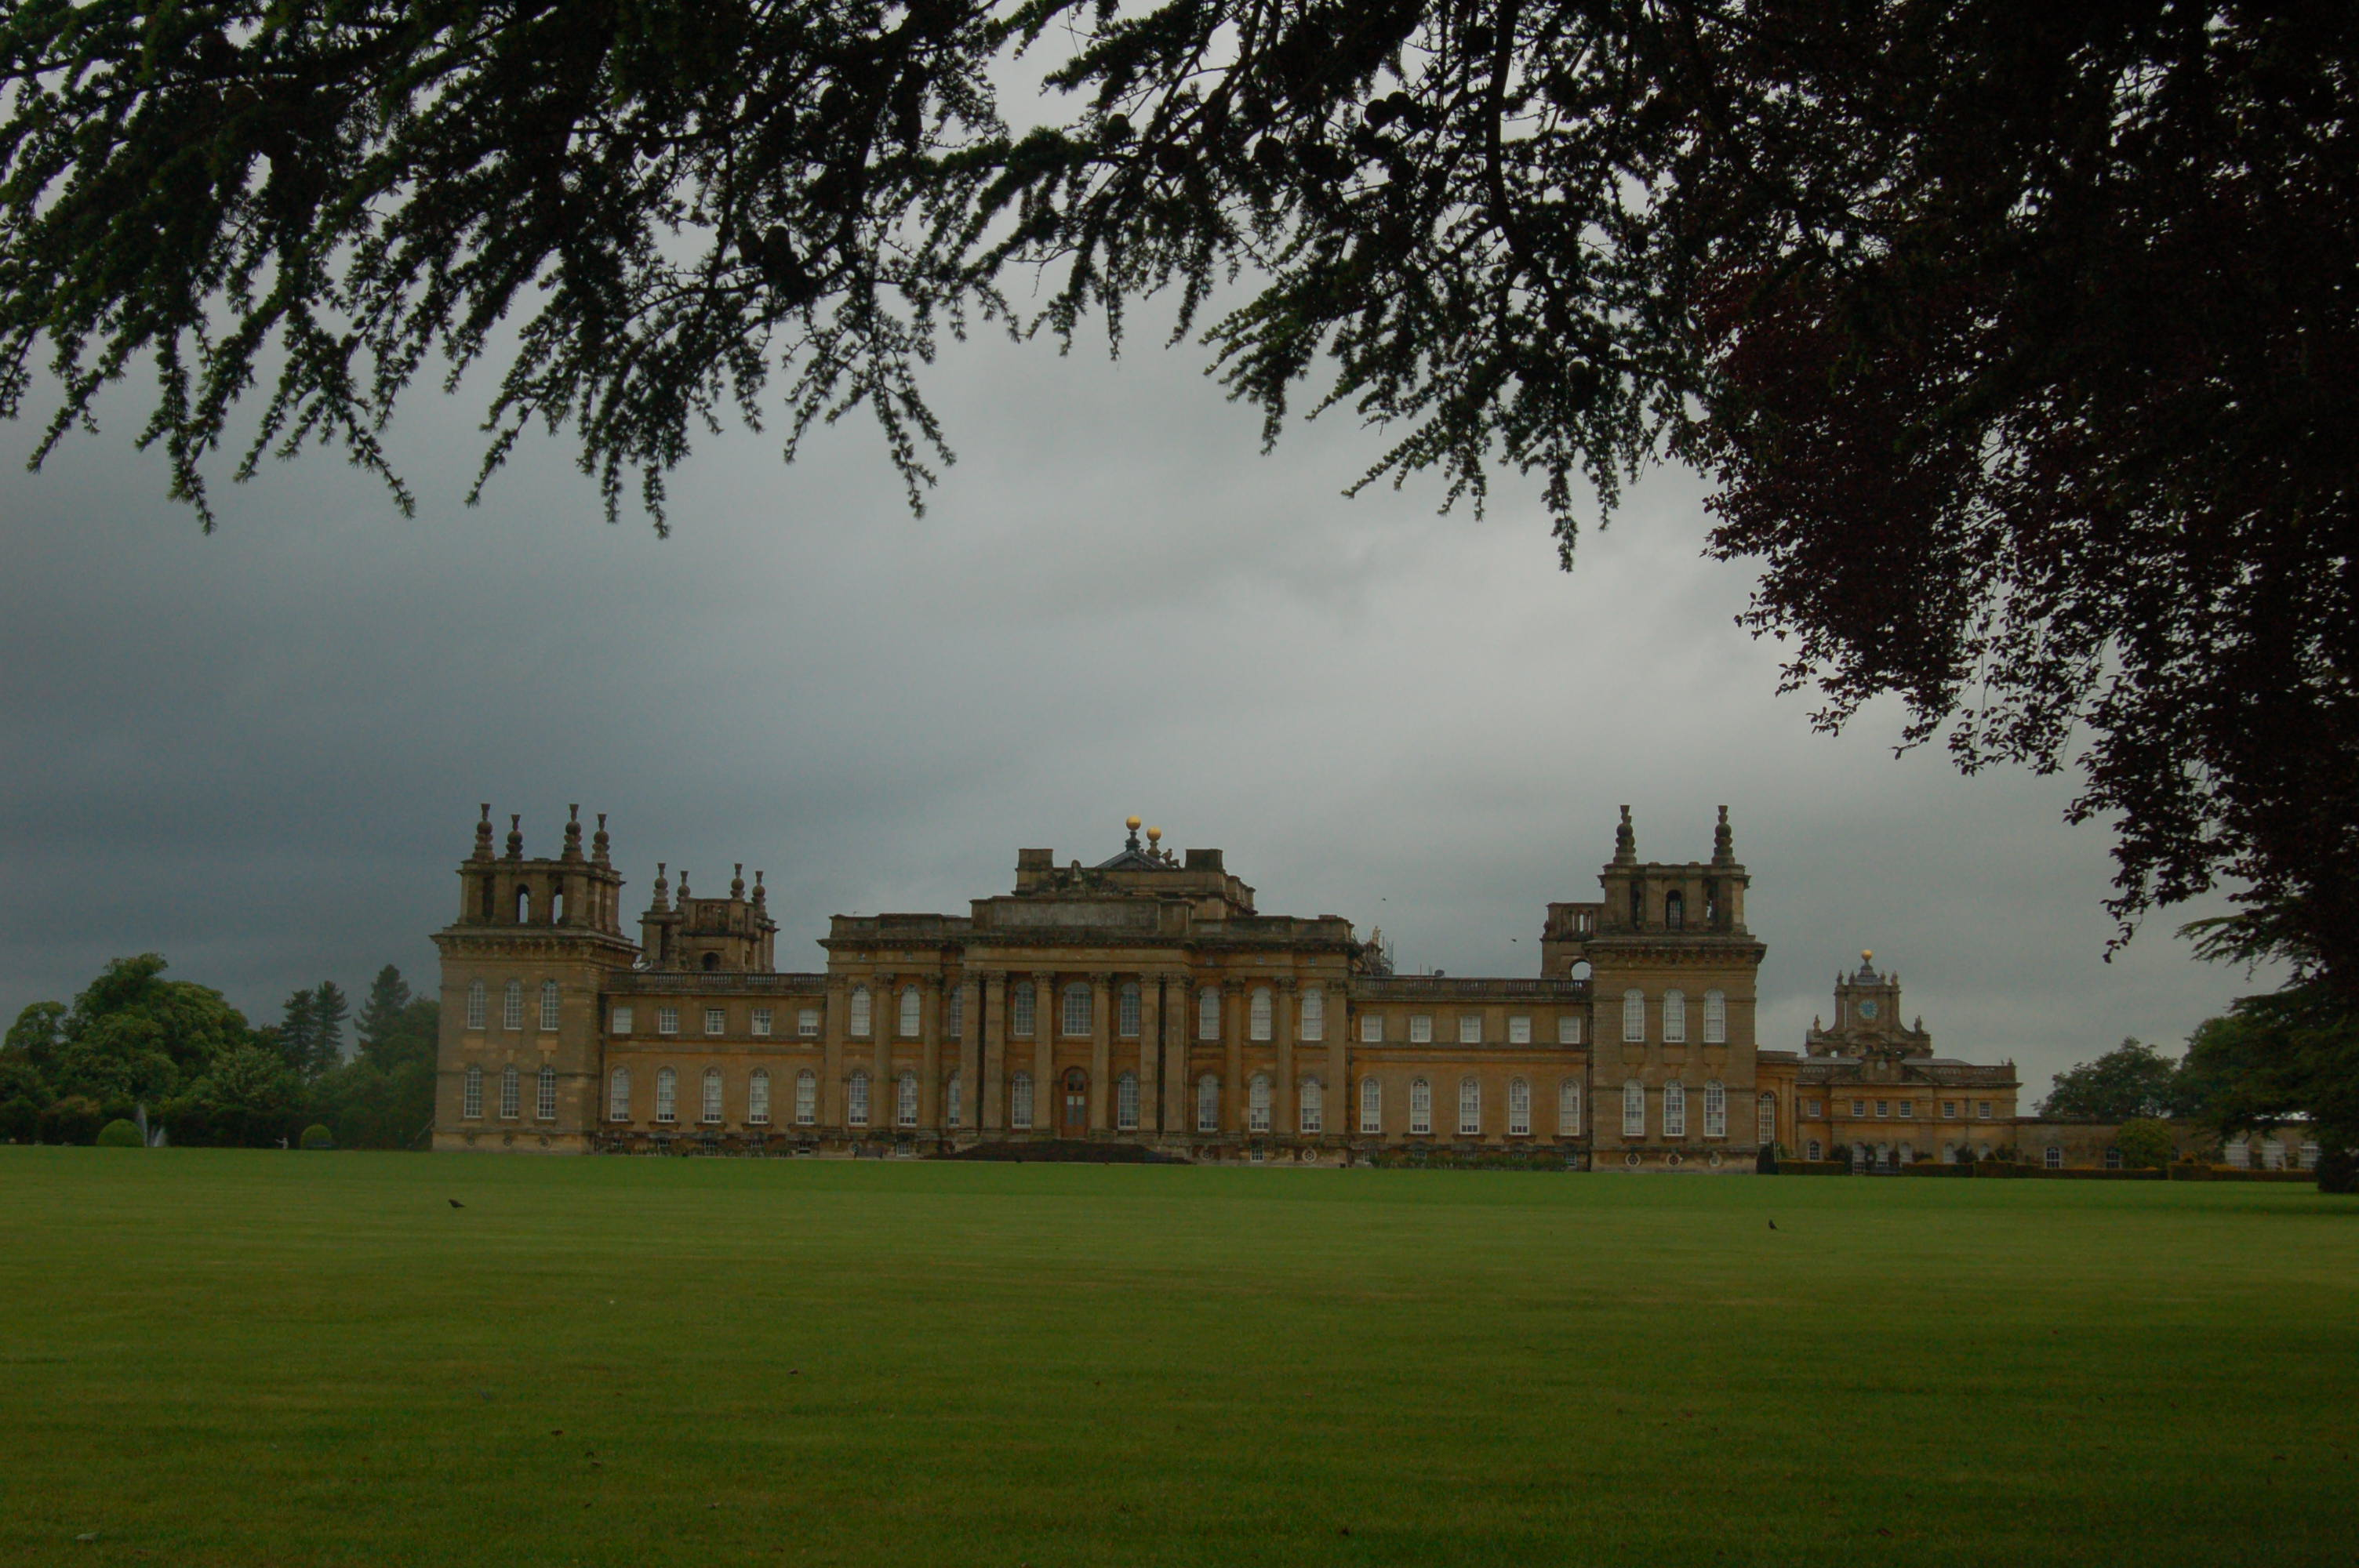 The Great Lawn of Blenheim Palace